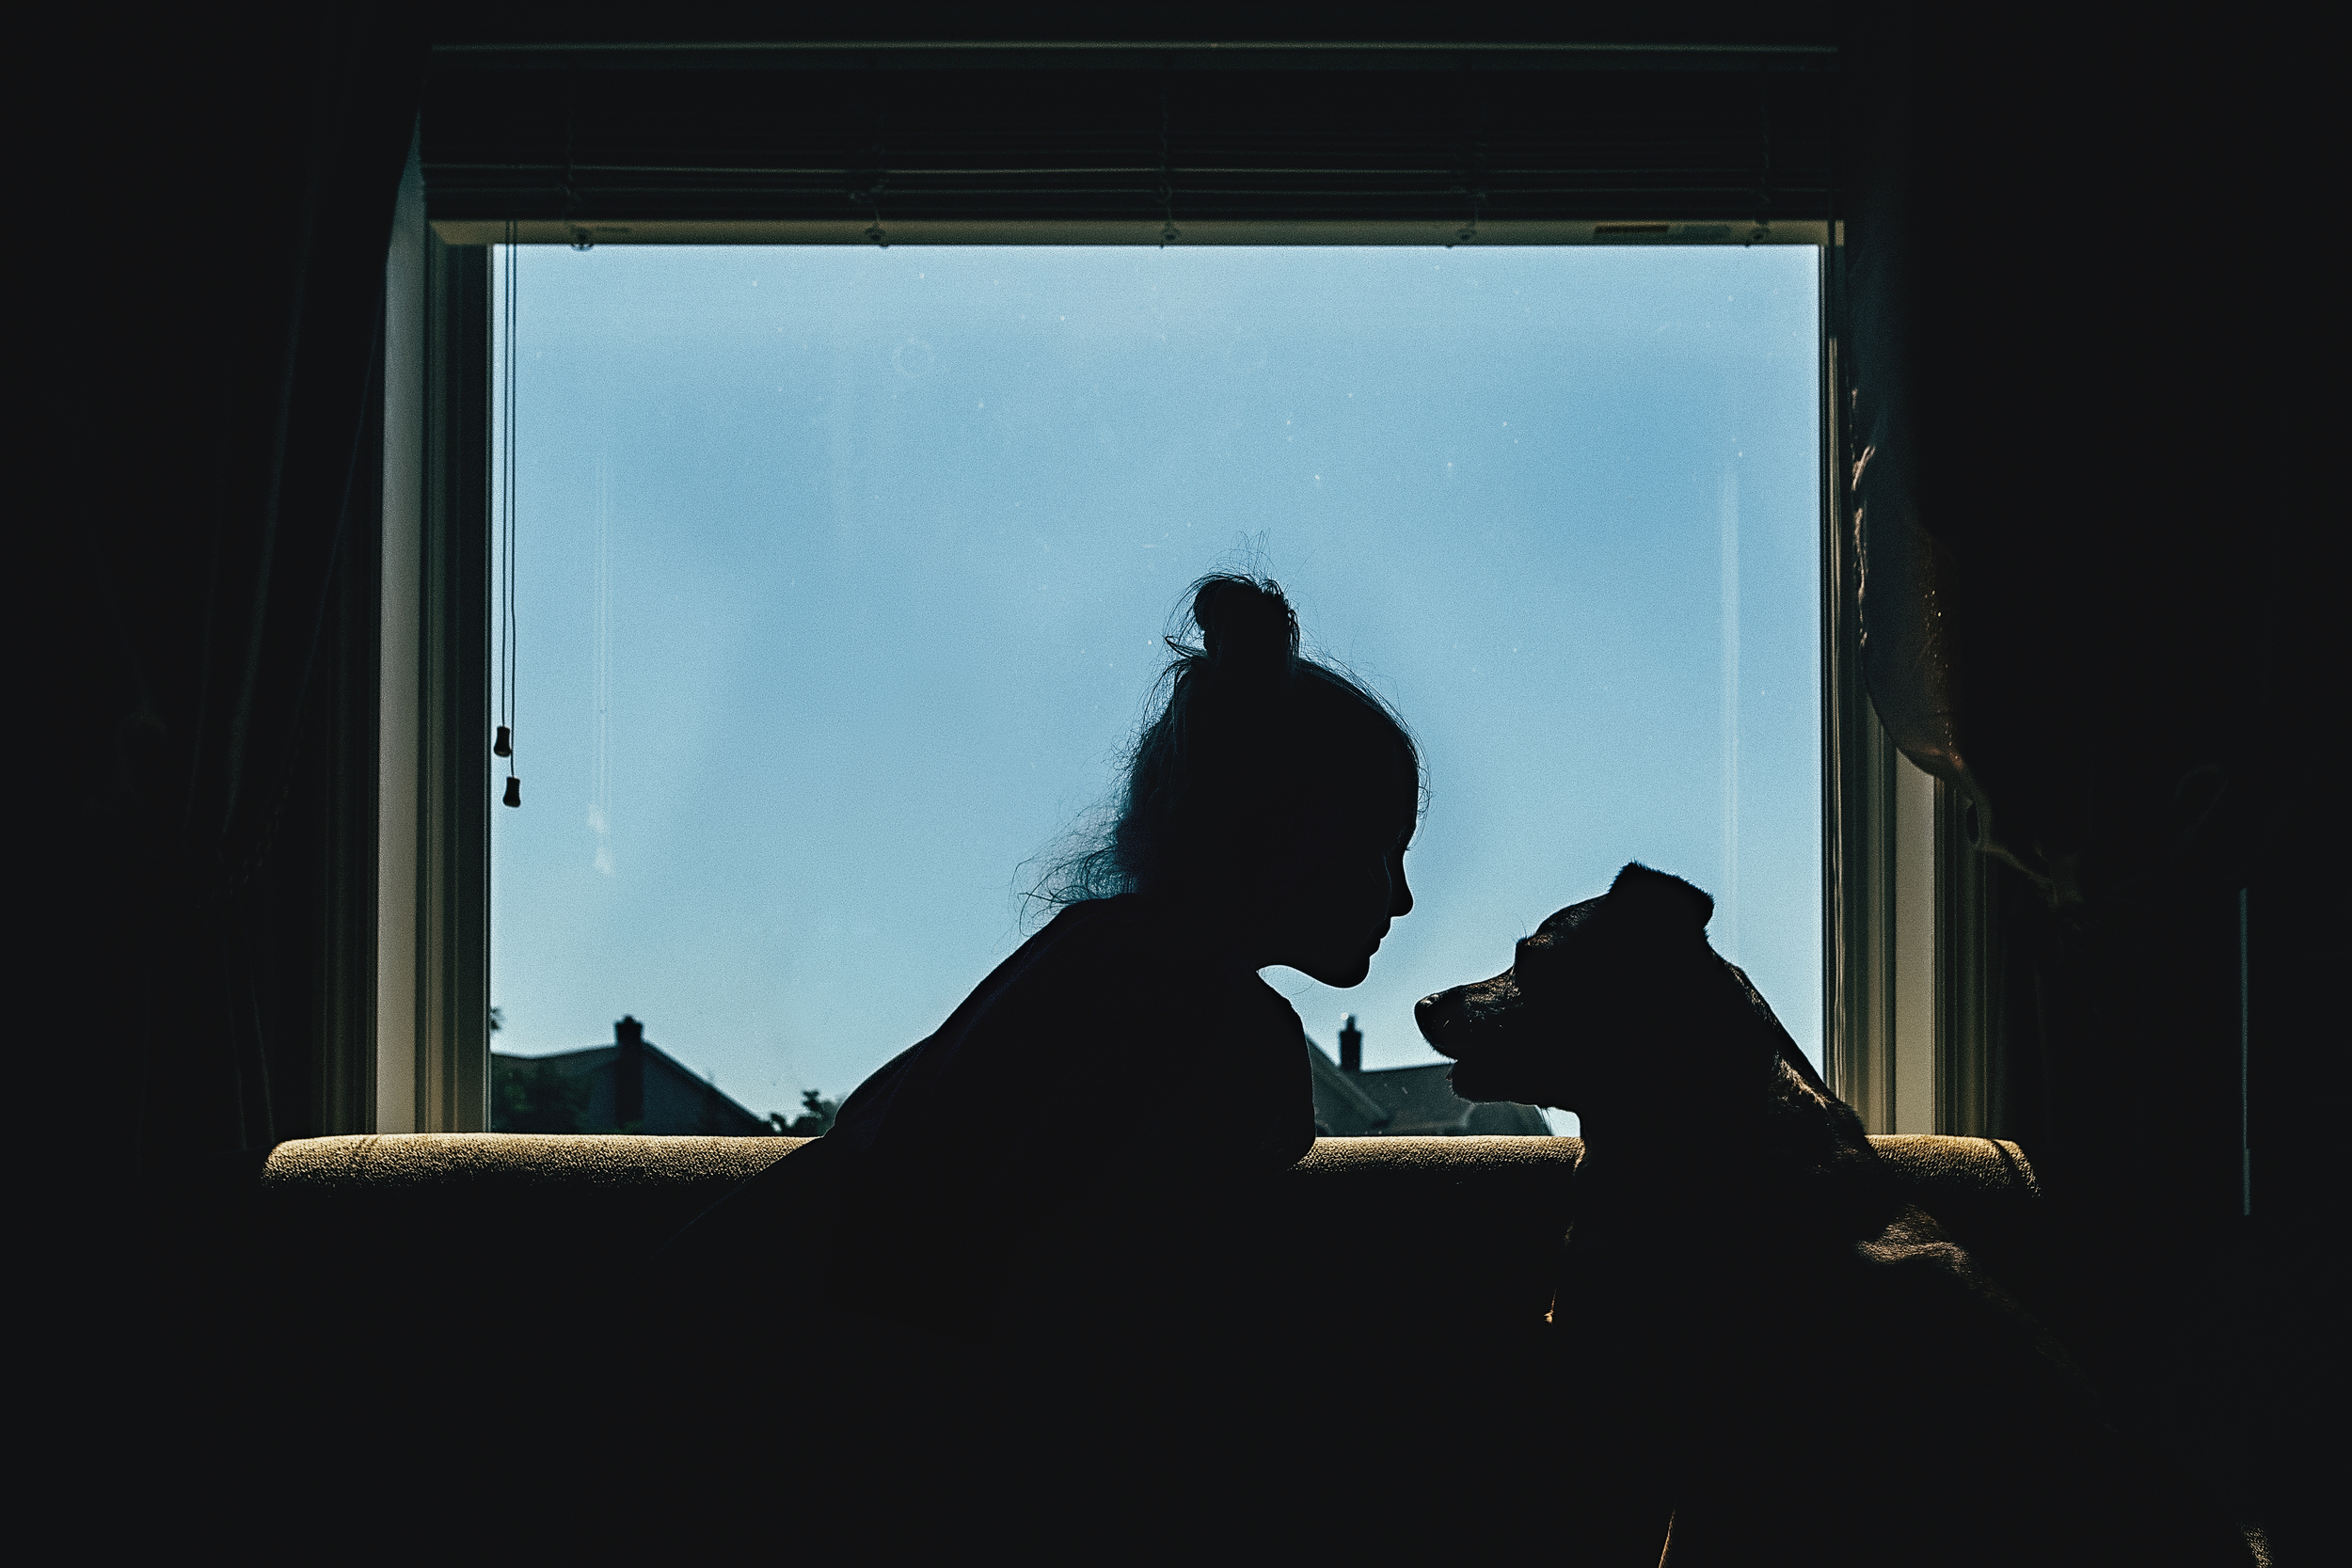 long-island-photographyer-hello-olivia-photography-a-room-with-a-view-dog-silhouette.jpg